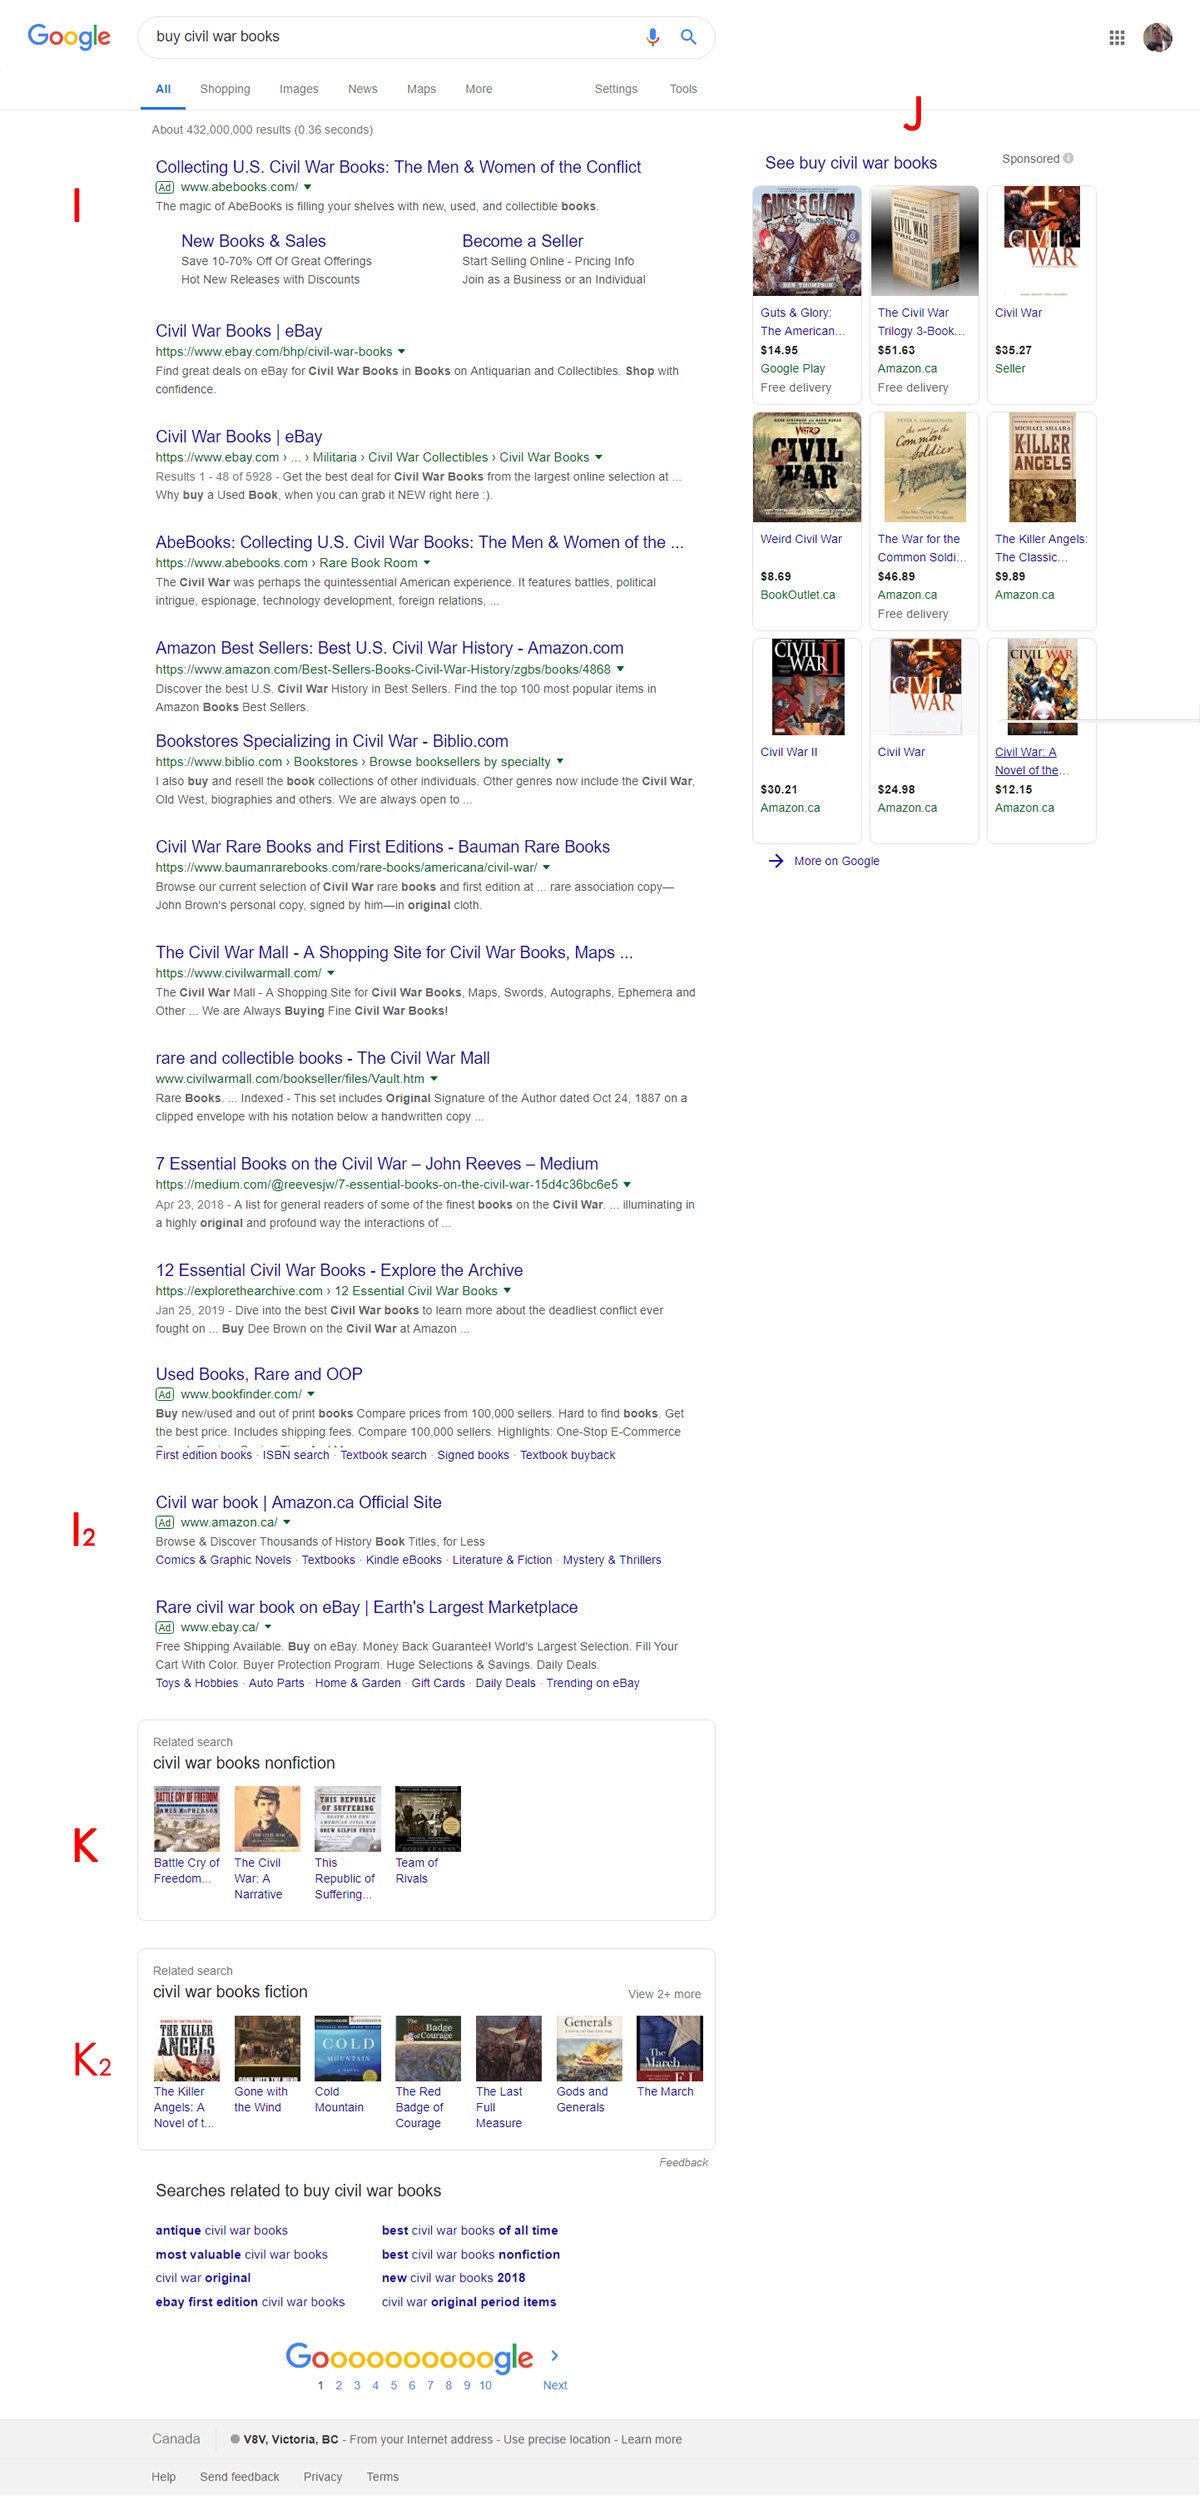 SERP layout with ads